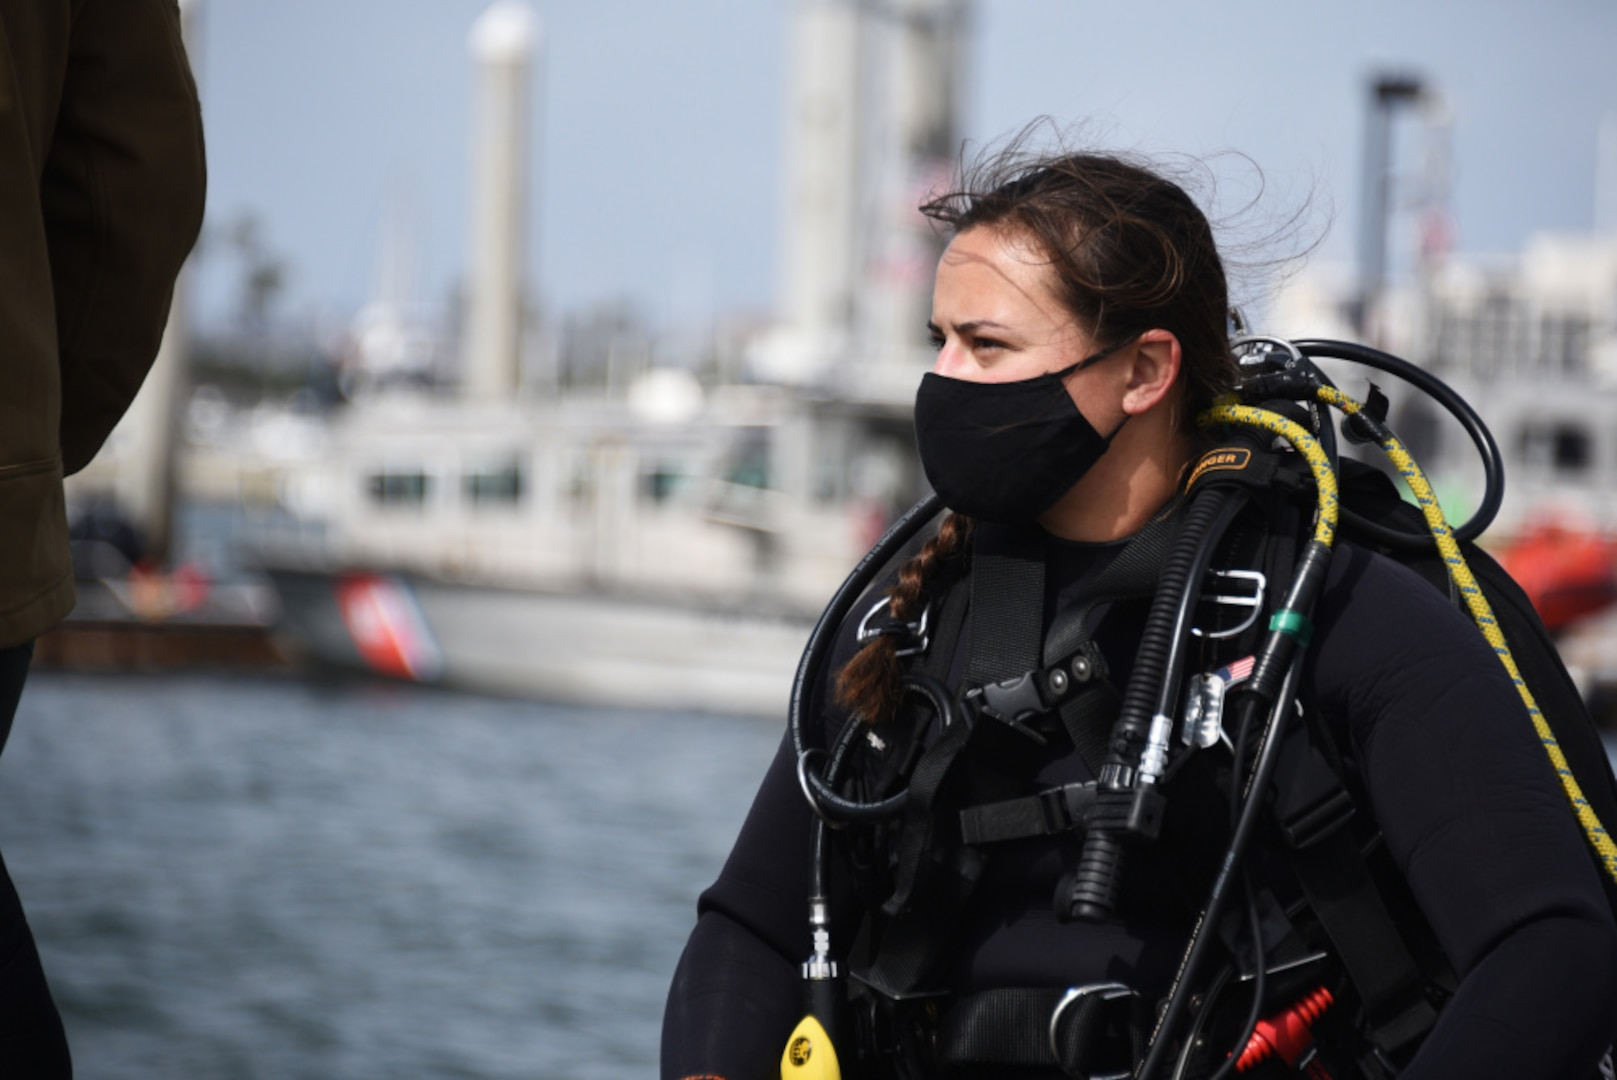 Petty Officer 2nd Class Monique Gilbreath prepares to take part in a diving exercise at Coast Guard Sector San Diego, March 25, 2021. Gilbreath is one of two active female divers in the Coast Guard. (U.S. Coast Guard photo by Petty Officer 3rd Class Alex Gray)